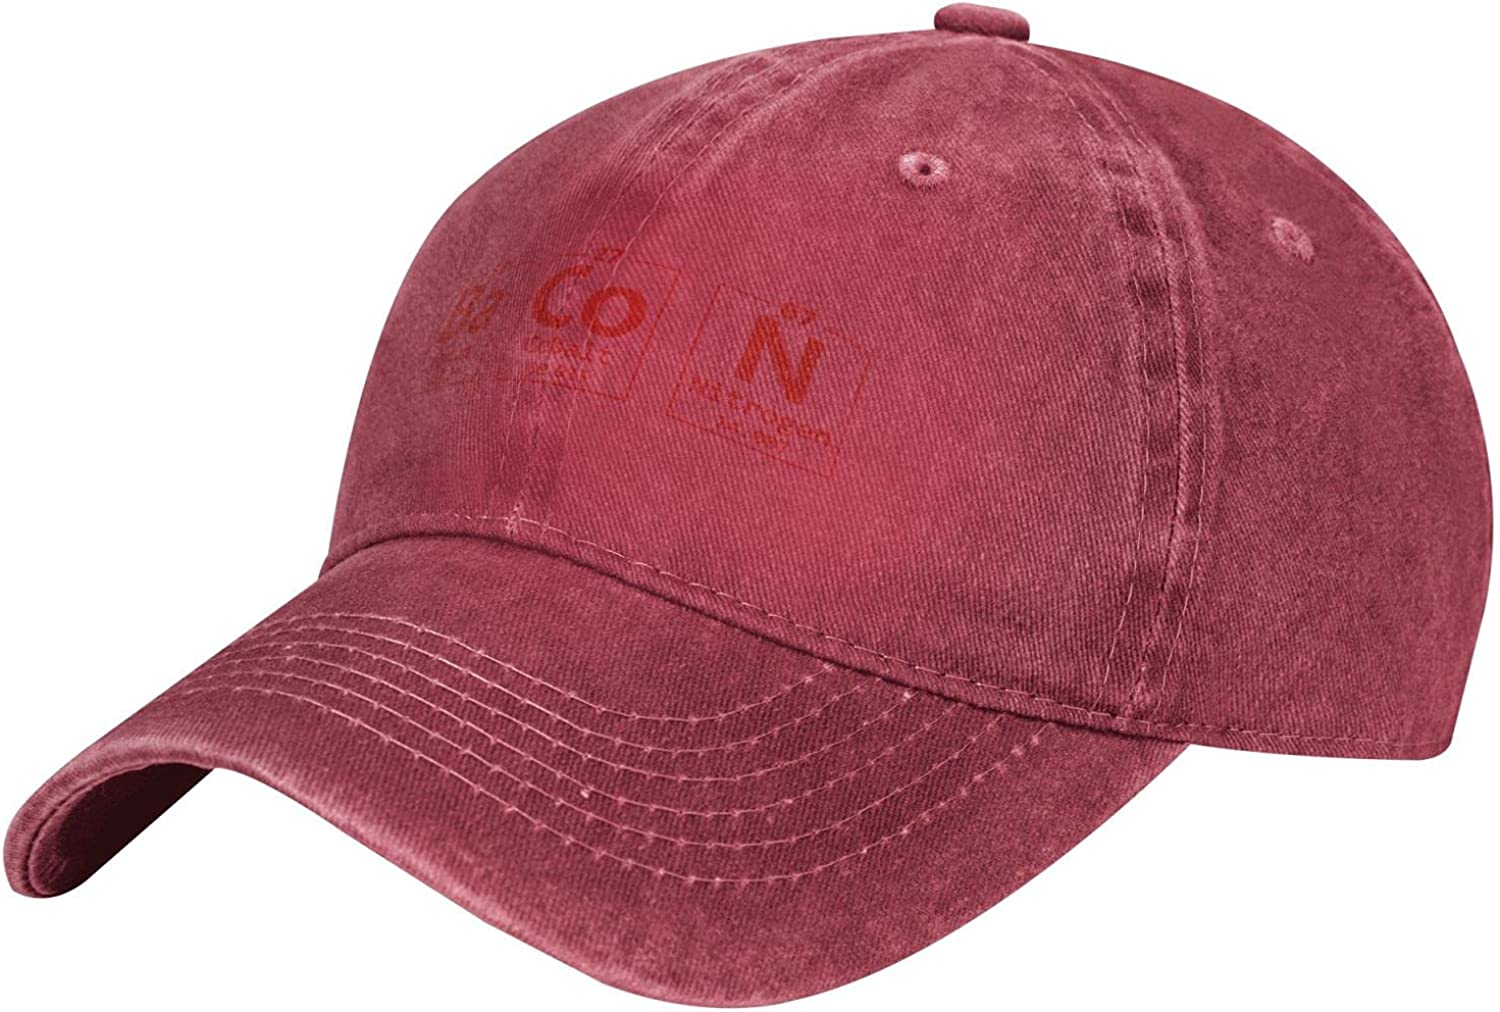 Jianglihxp The Chemistry of Bacon Unisex Adult Fashion Outdoor Cowboy Caps Adjustable Baseball Hat